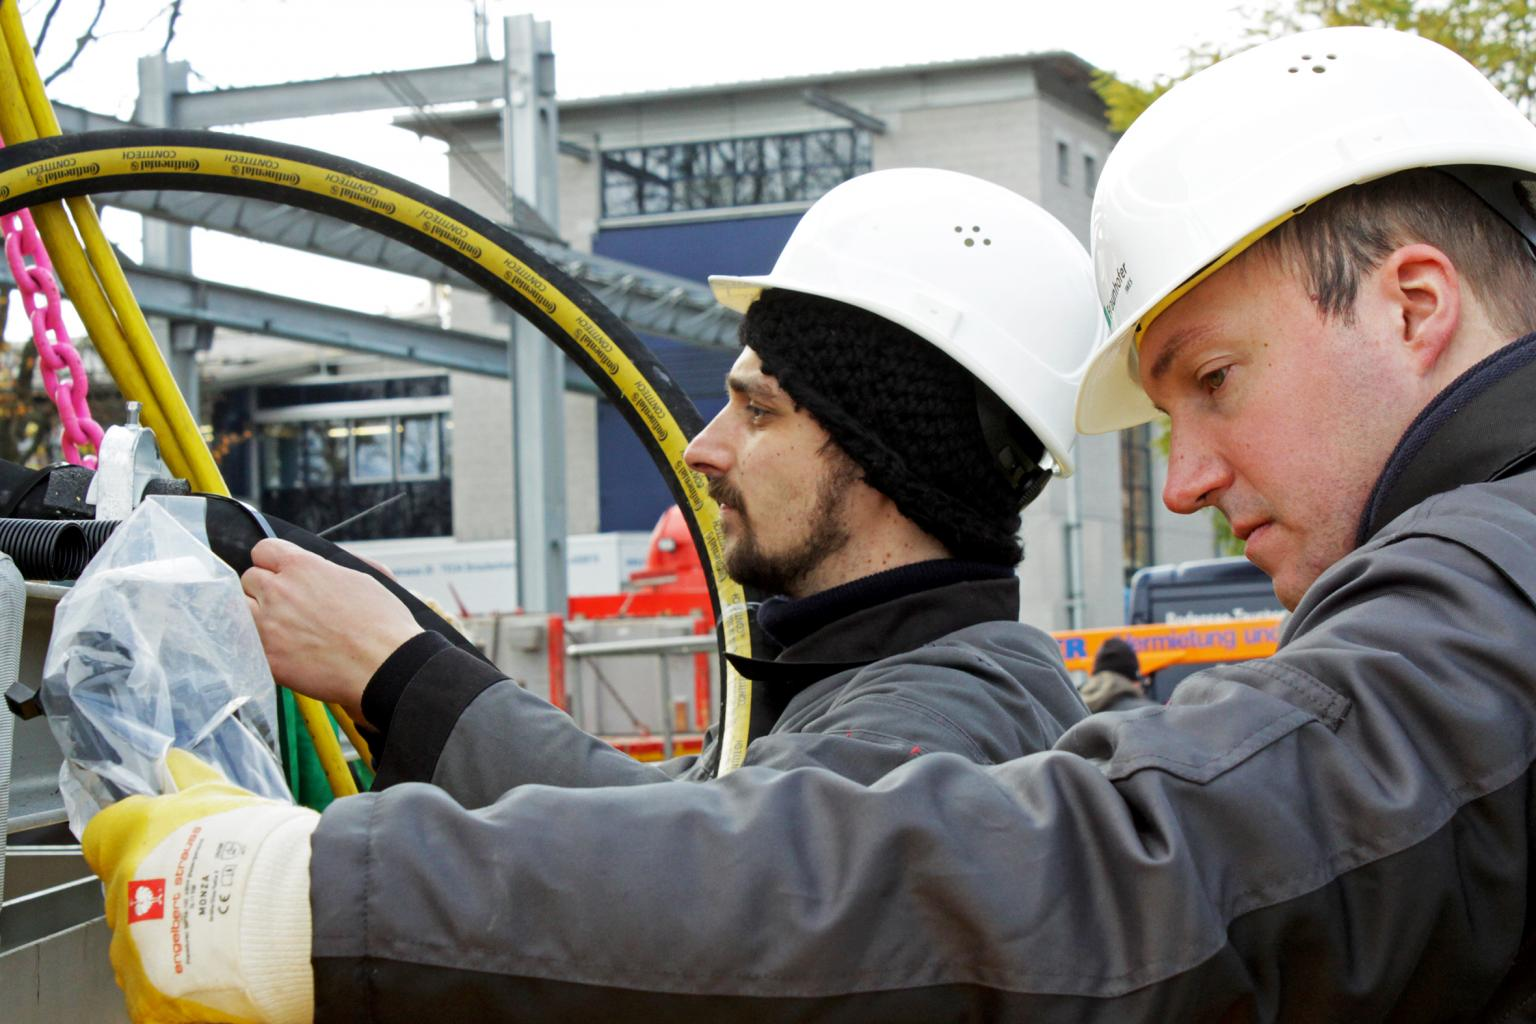 ContiTech has developed the pressure equalisation hose for a new energy storage. Image credit: Fraunhofer IWES